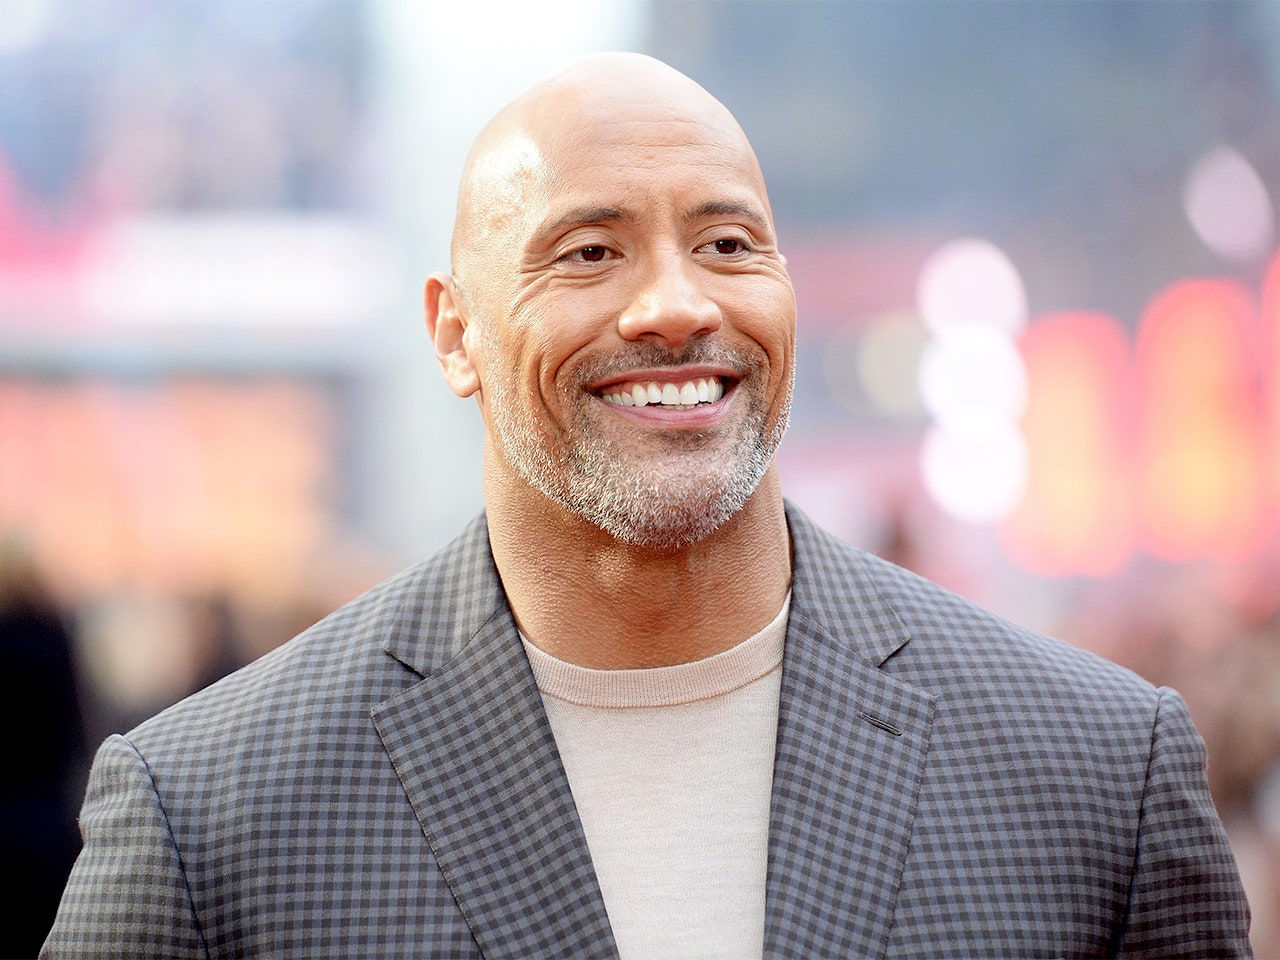 Dwayne 'The Rock' Johnson is a massive movie star, both literally and figuratively. Find out how tall the celebrity is.